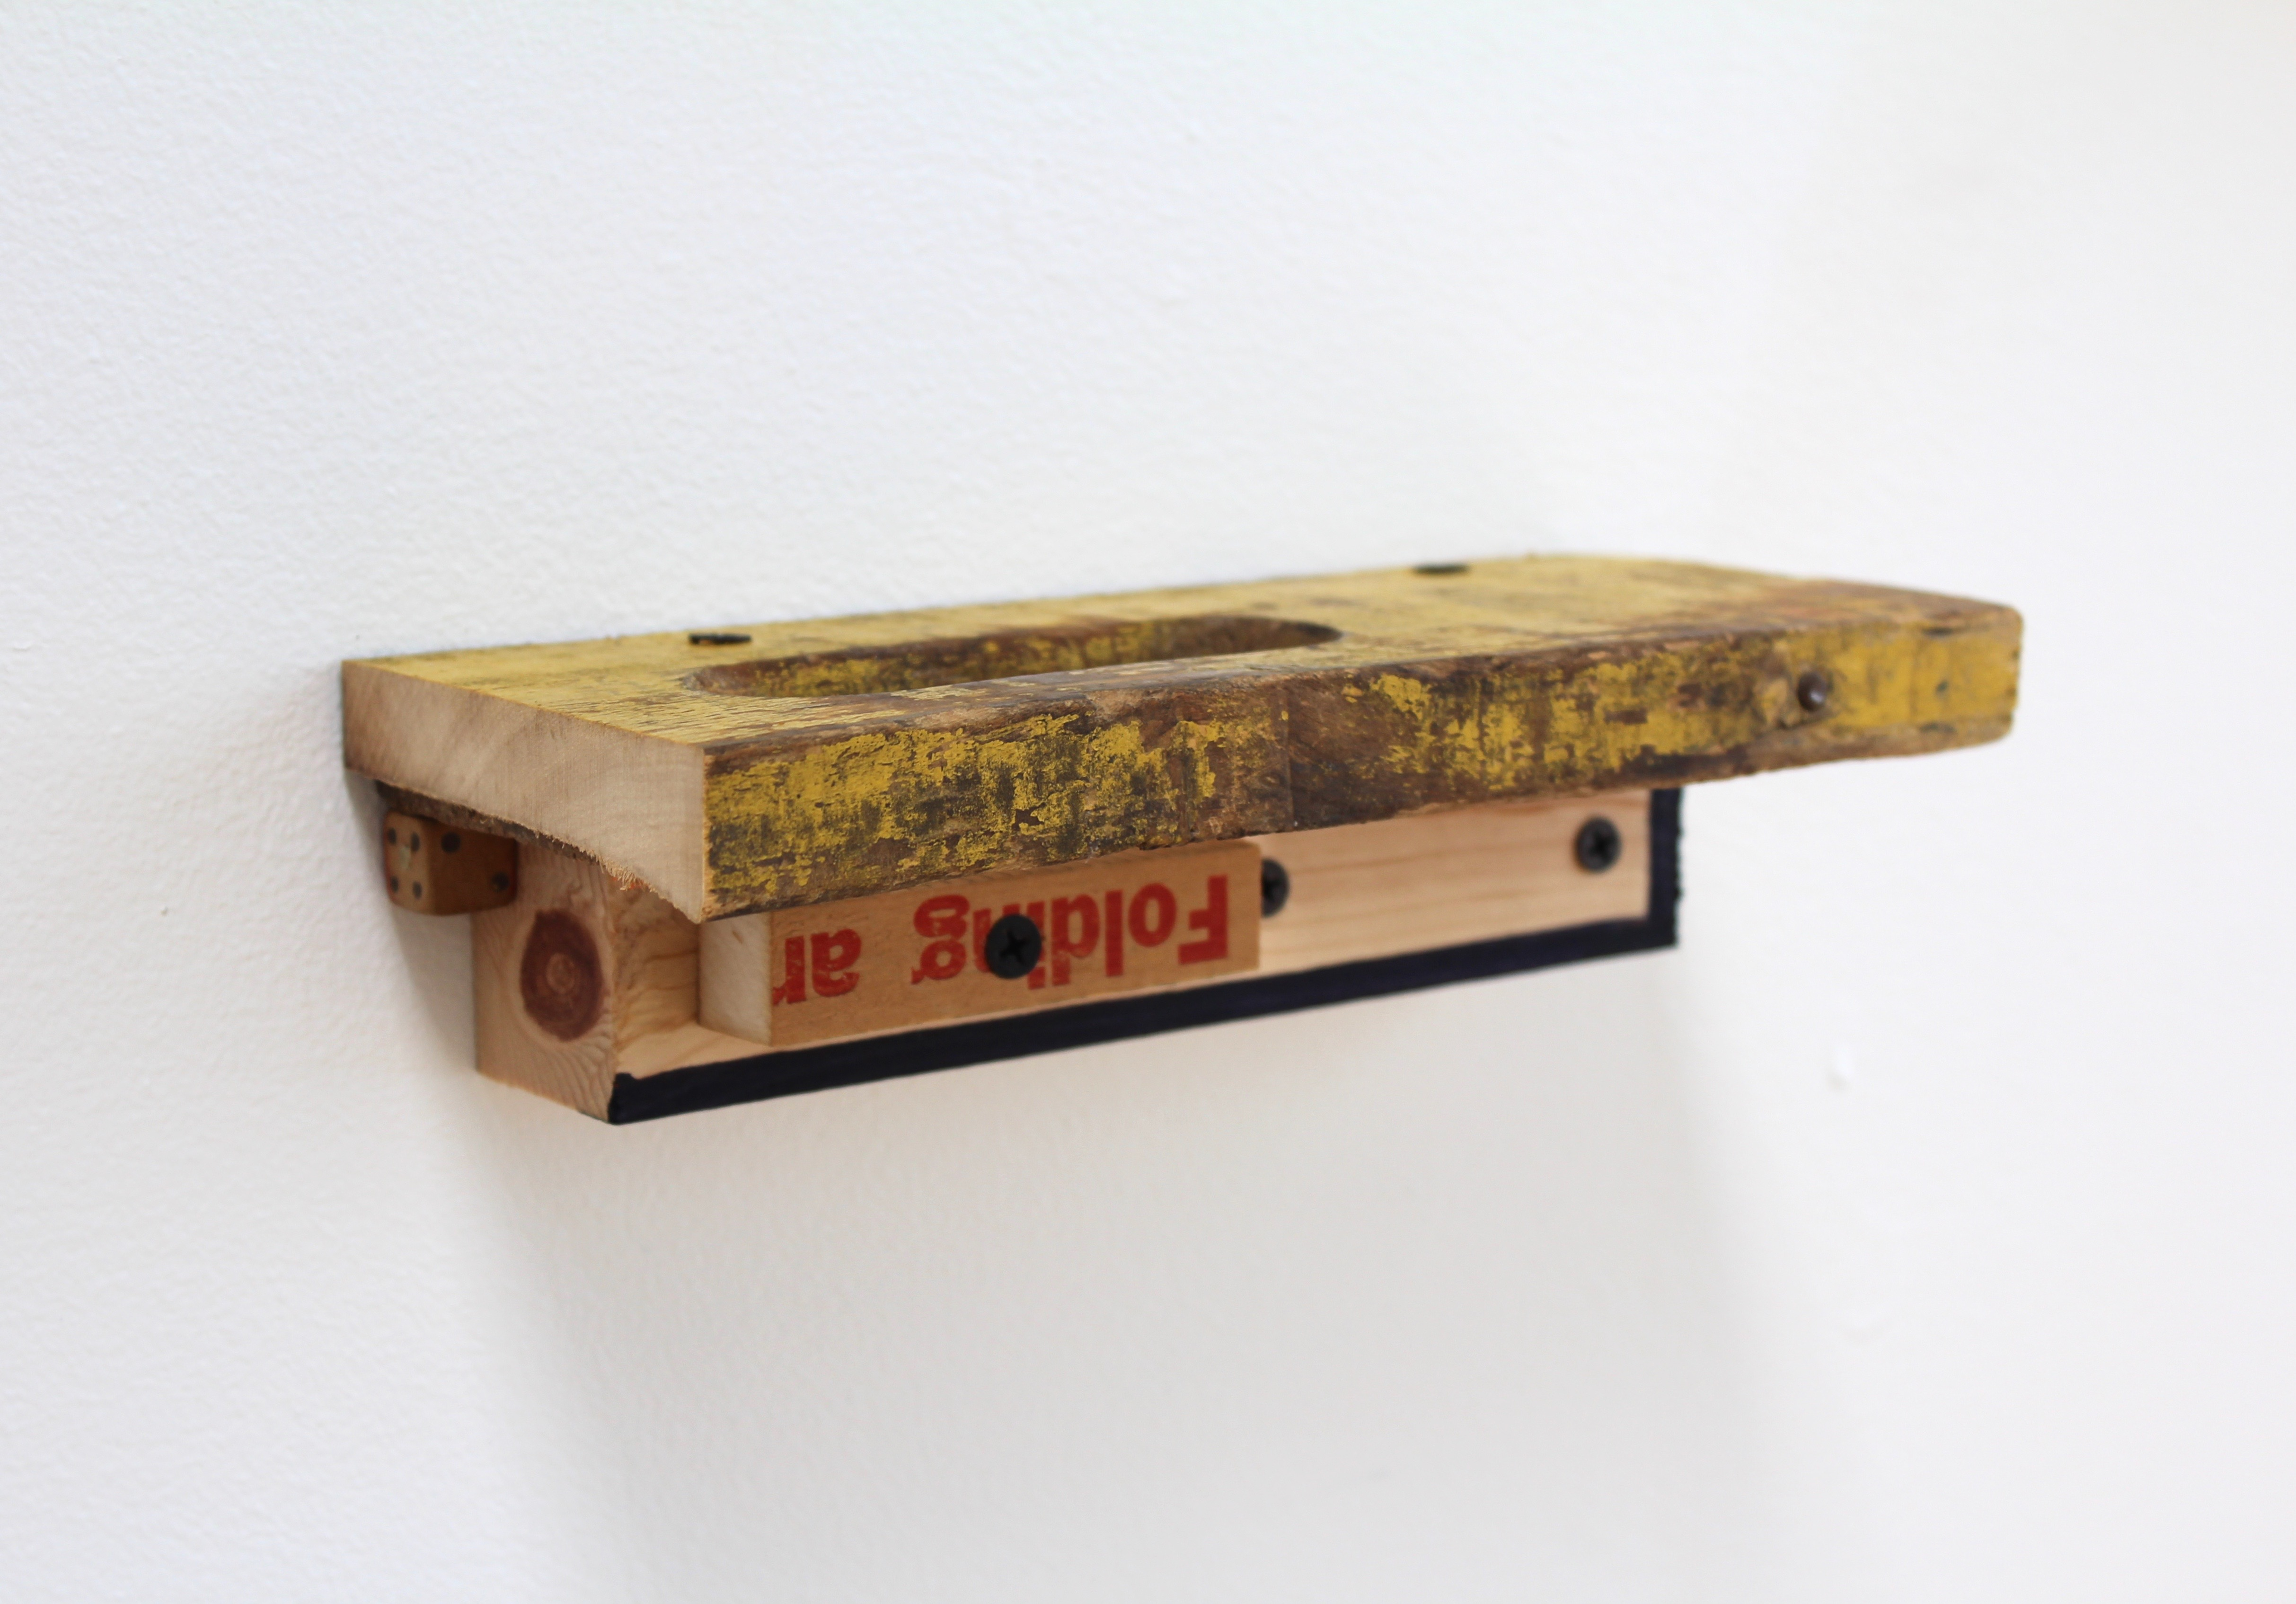 Kevin McNamee-Tweed.<em> Folding Shelf</em>, 2019. Ink on wood with affixed yardstick and found wood, 2 1/4 x 8 1/2 x 3 3/4 inches (5.7 x 21.6 x 9.5 cm)